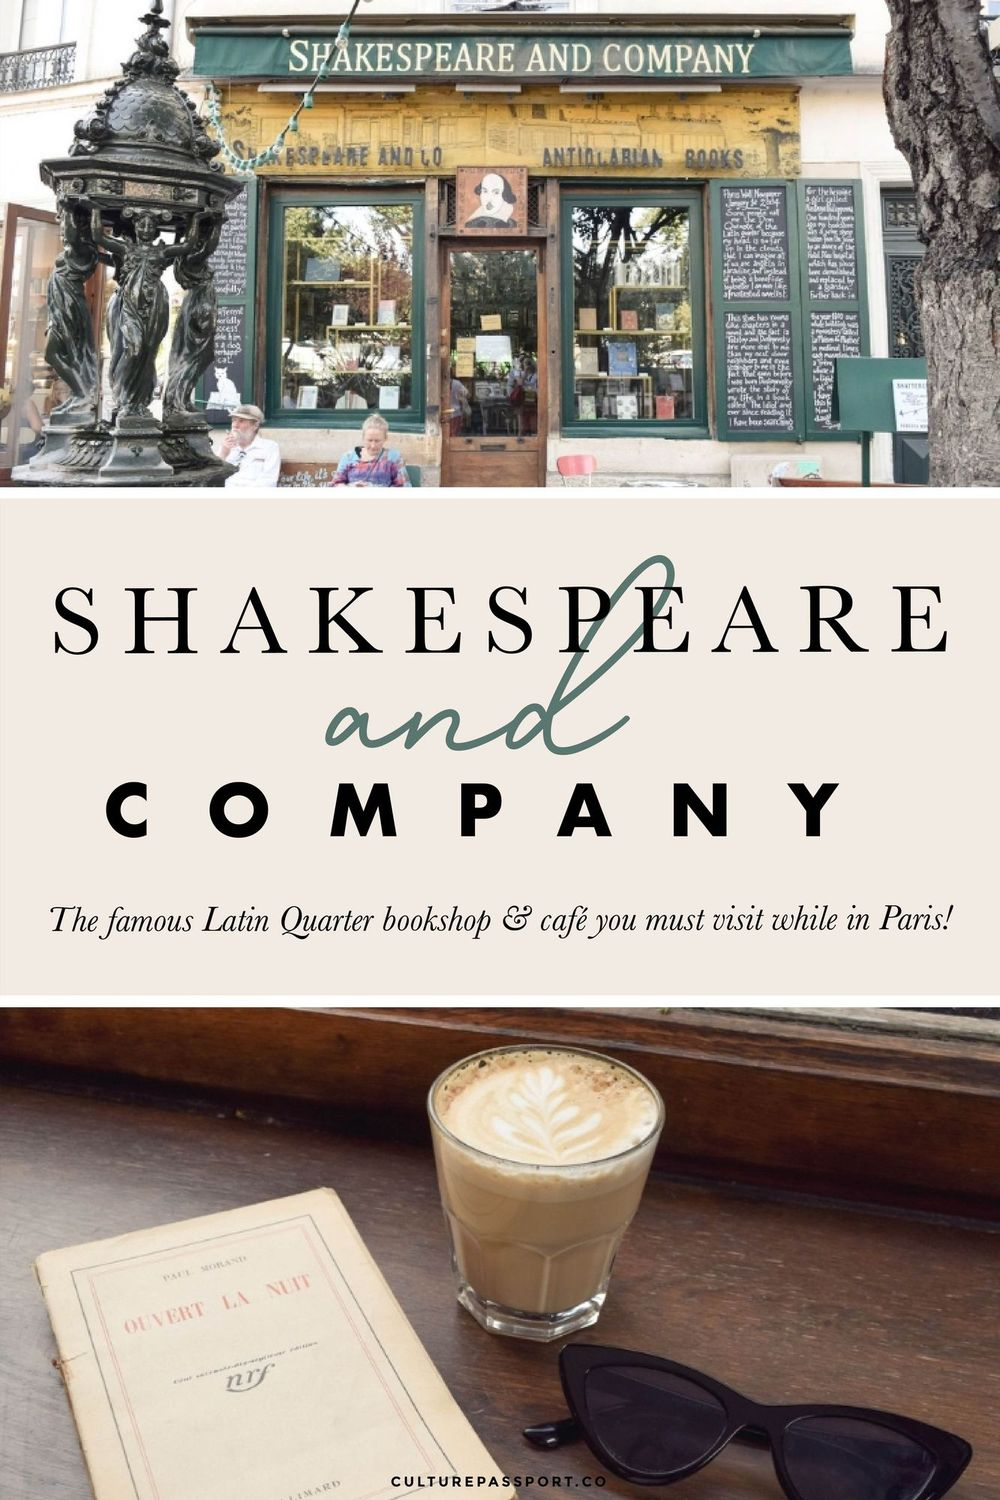 Shakespeare and Company – The Famous Latin Quarter Bookshop in Paris